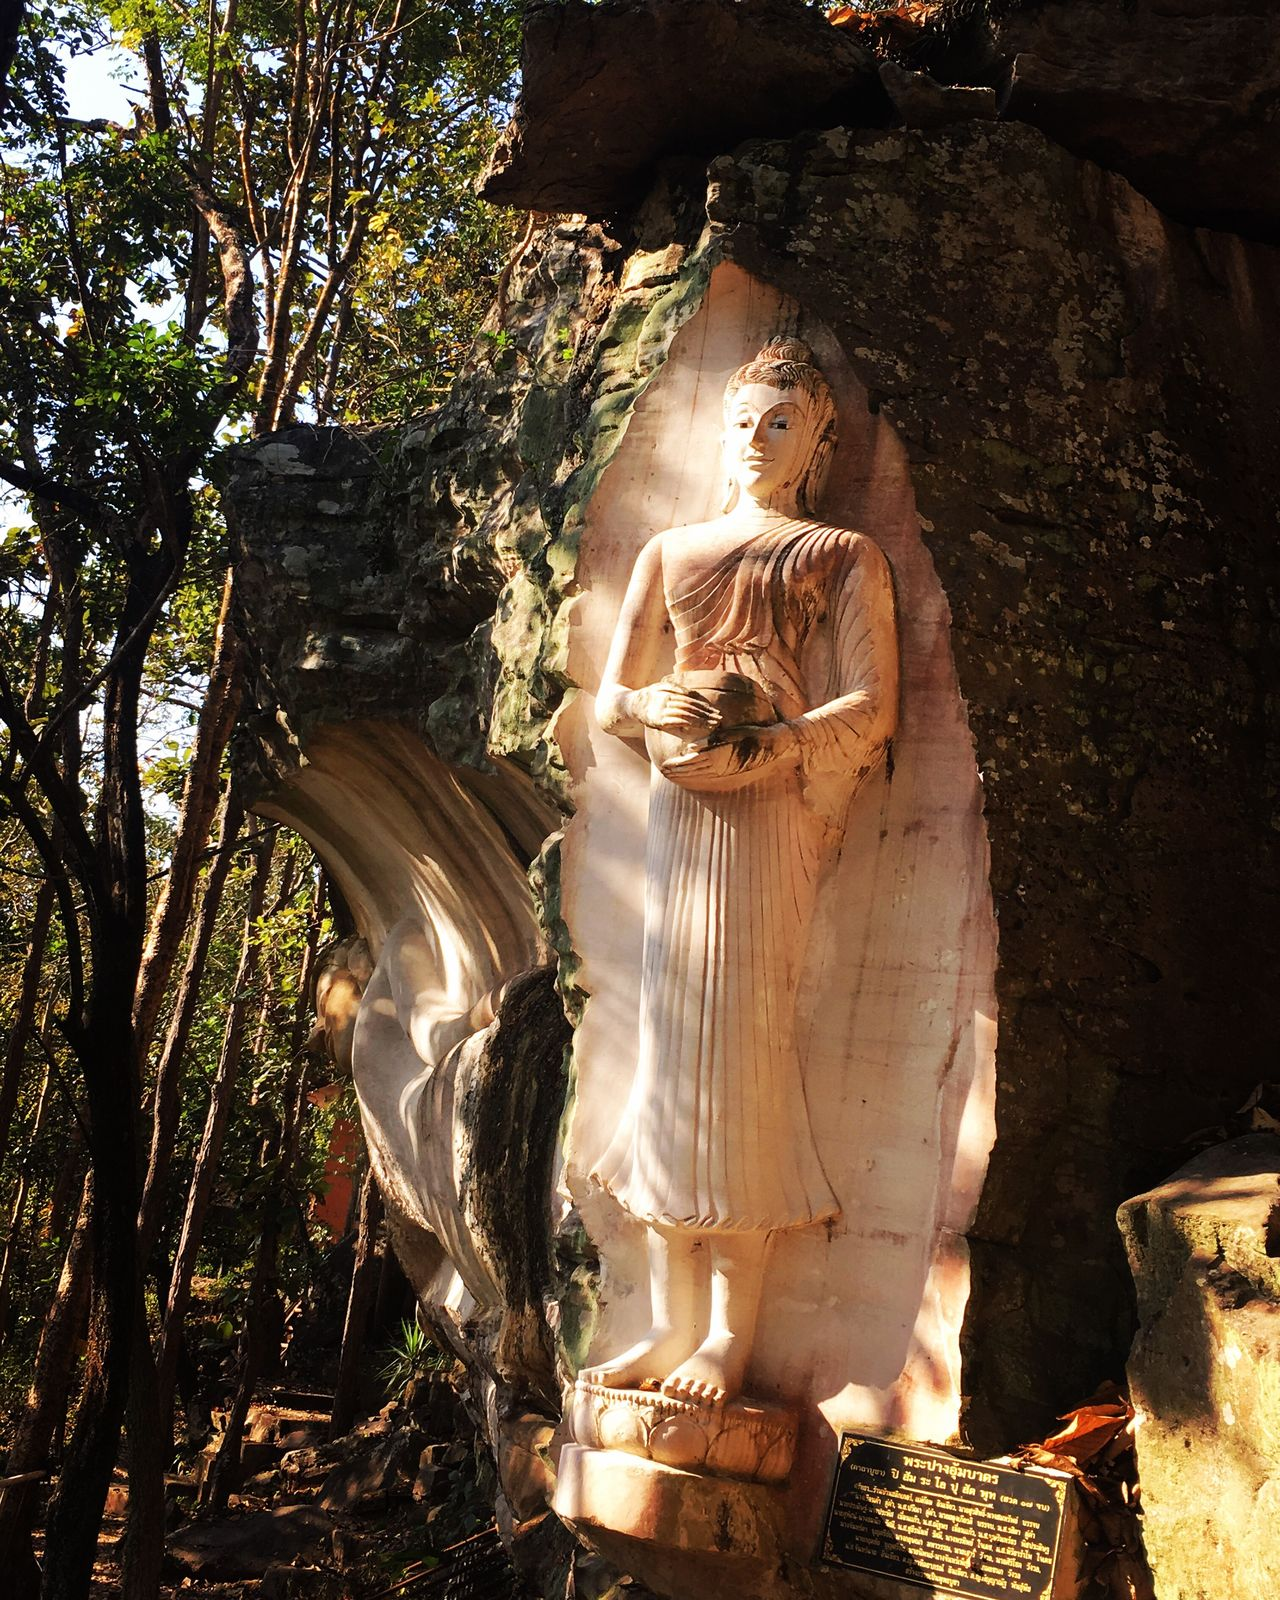 Statue Religion Spirituality Human Representation Travel Destinations Sculpture No People Outdoors Cultures Day